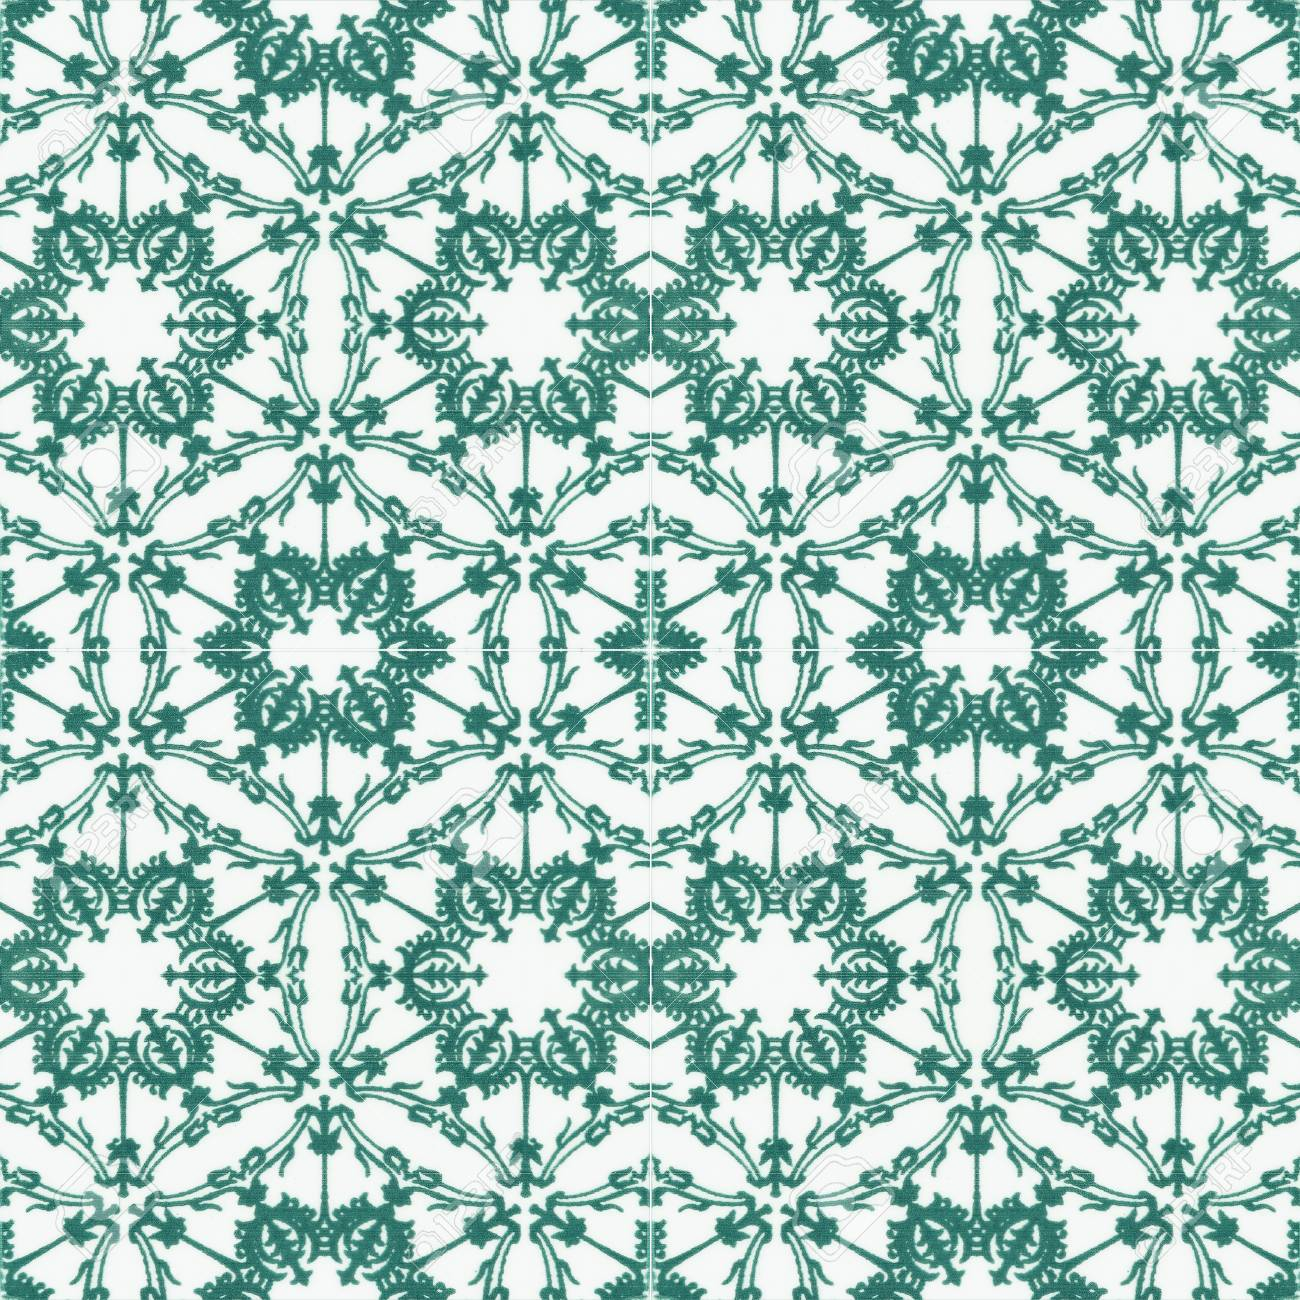 Old Ceramic Tiles Patterns In The Park Public. Stock Photo, Picture ...